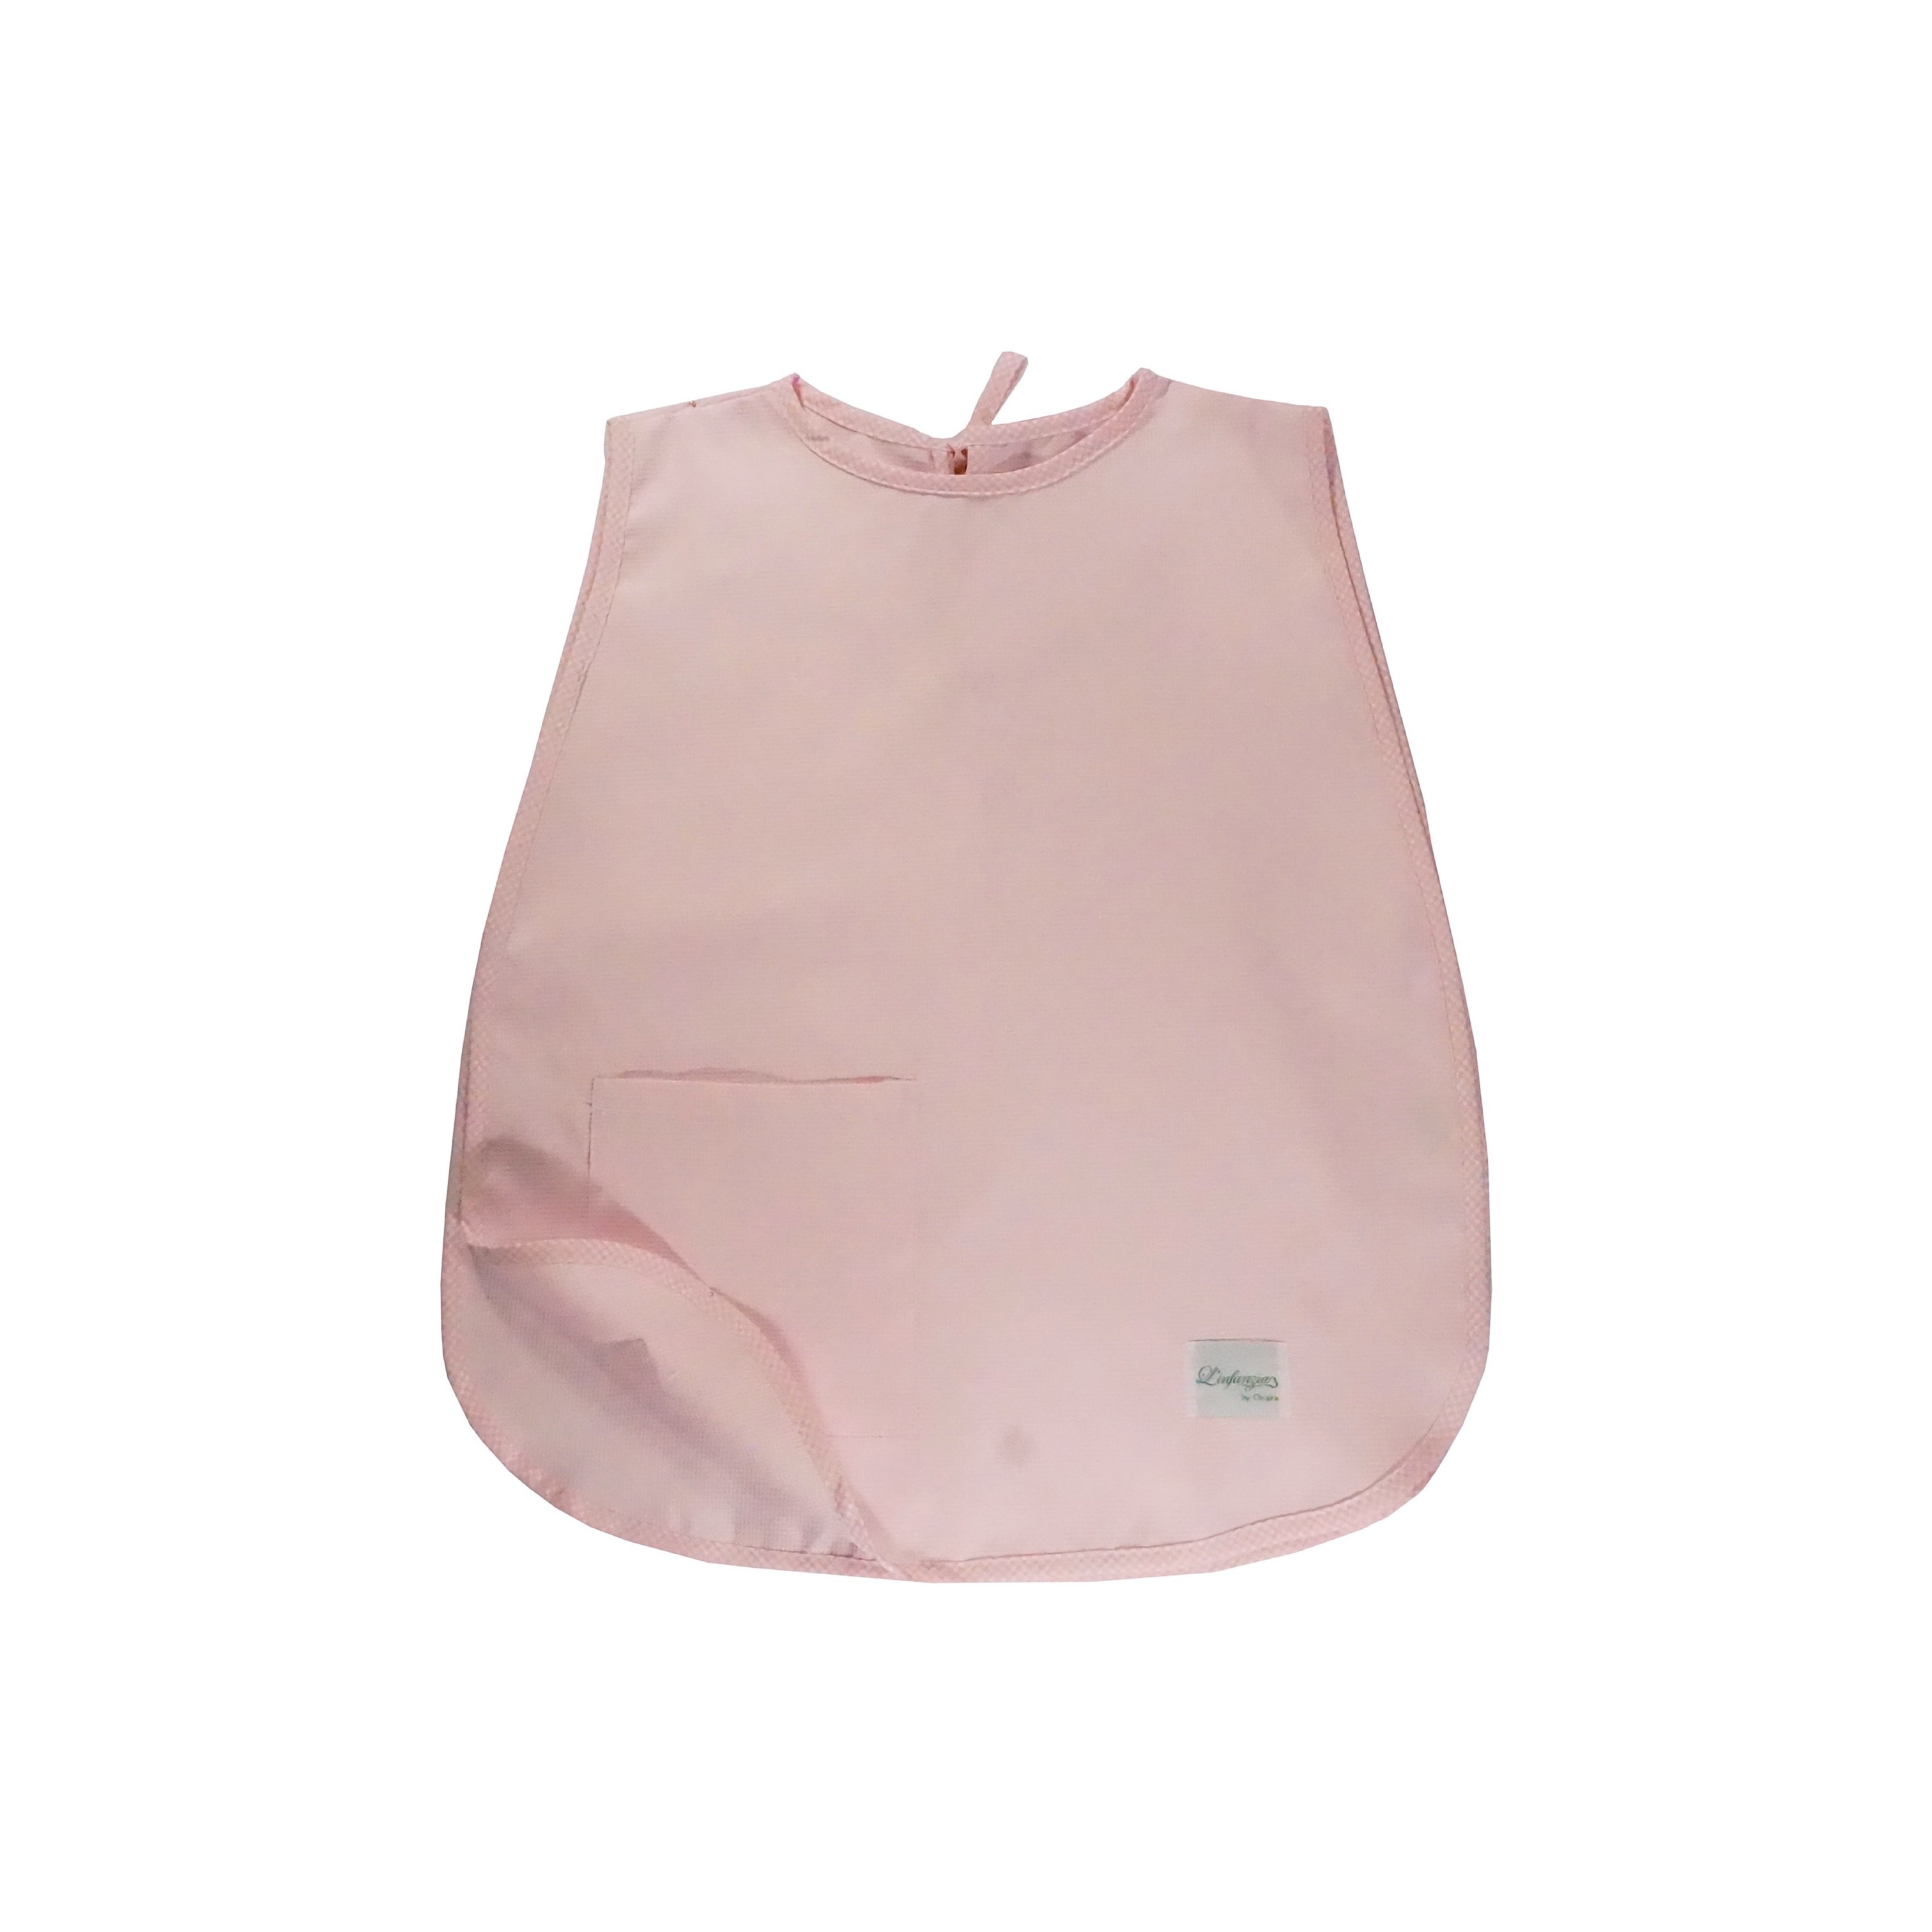 CANDY PINK SITO squaredy 2